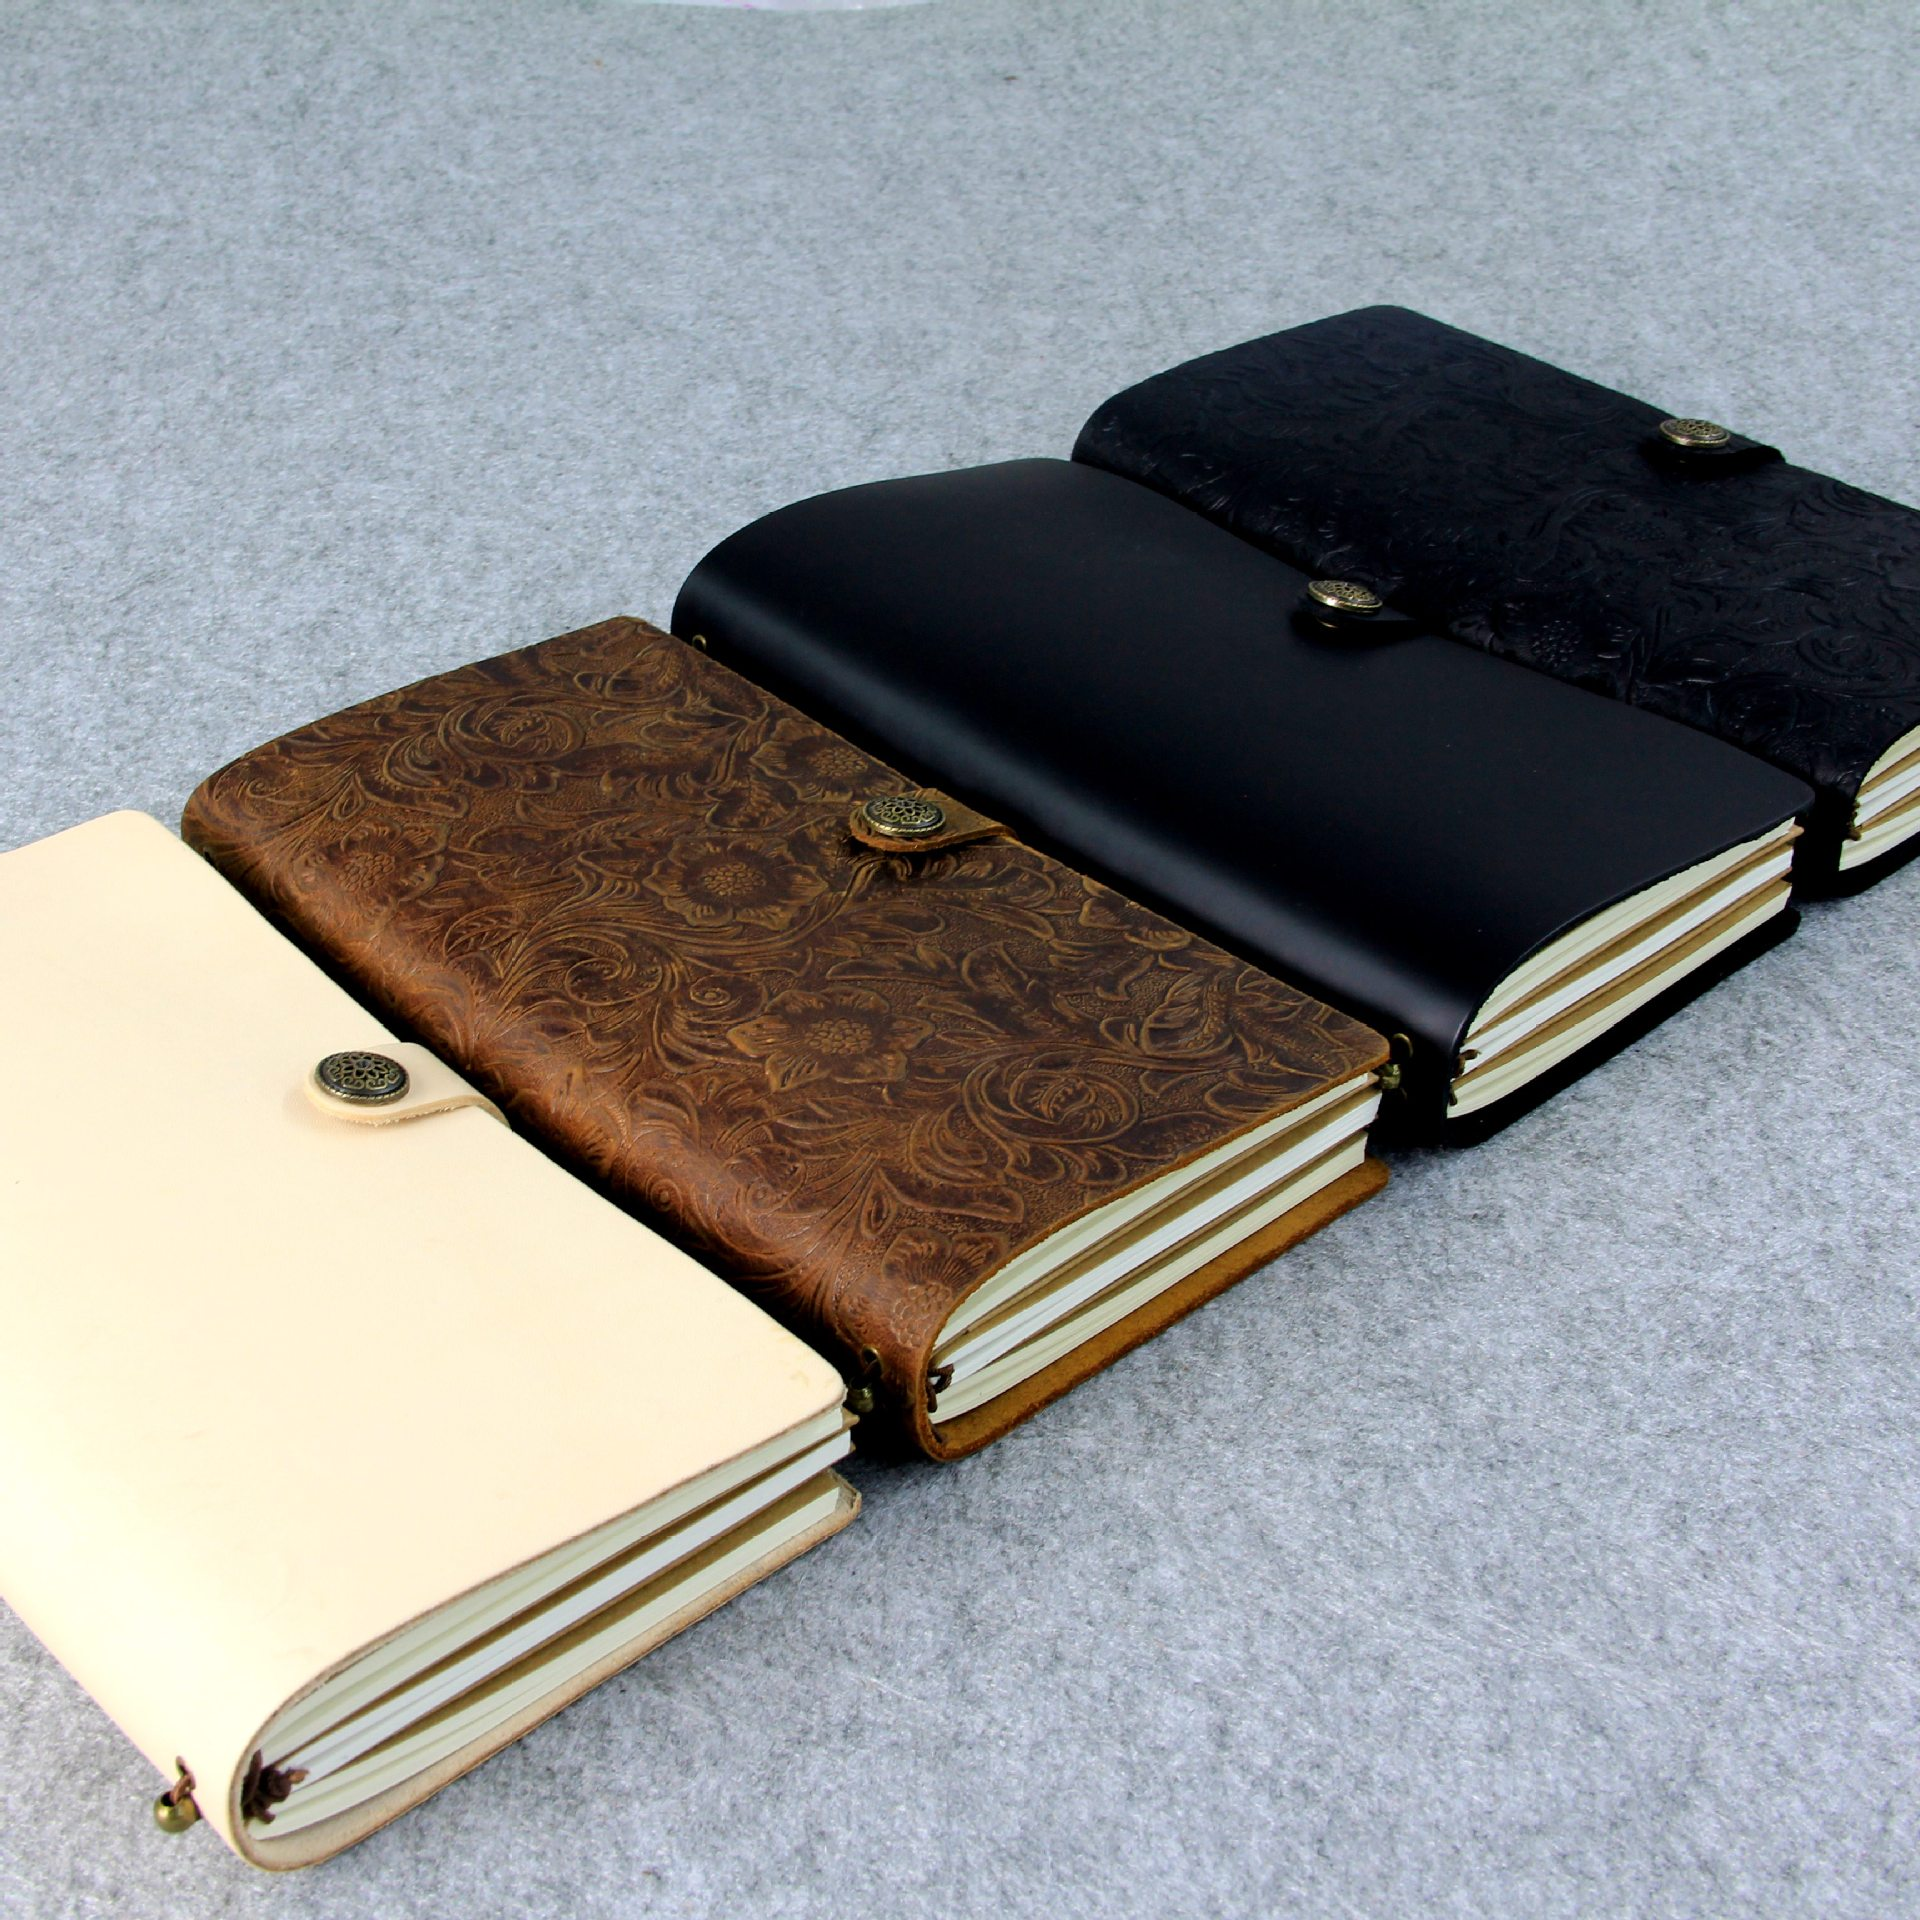 100% Genuine Leather Traveler's TN Notebook Diary Journal Vintage Handmade Cowhide gift Business Office Notebook 13x22cm